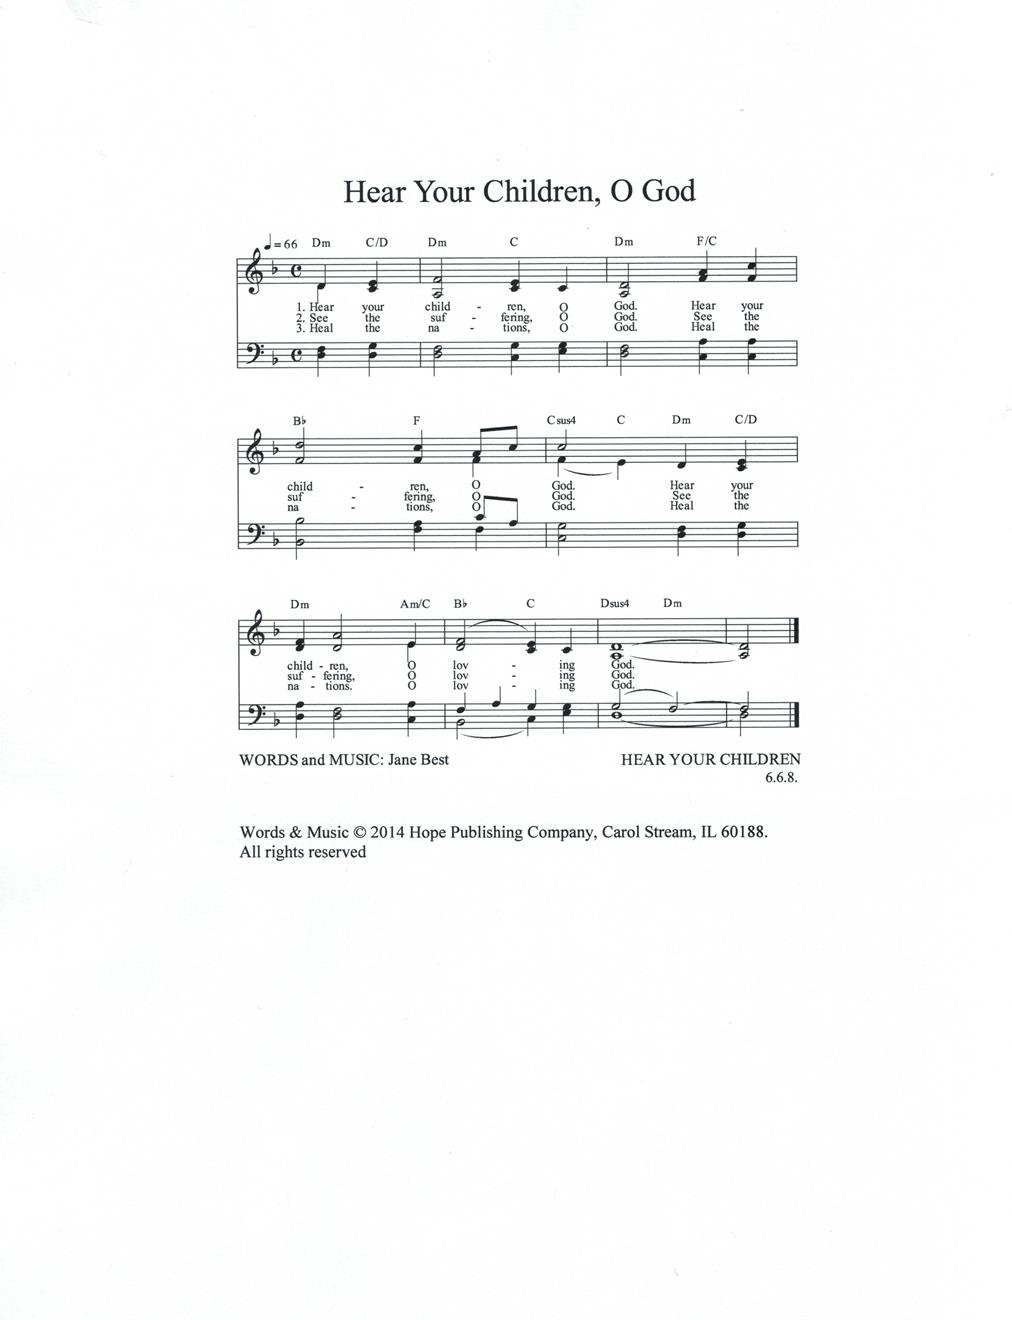 Hear Your Children O God Cover Image